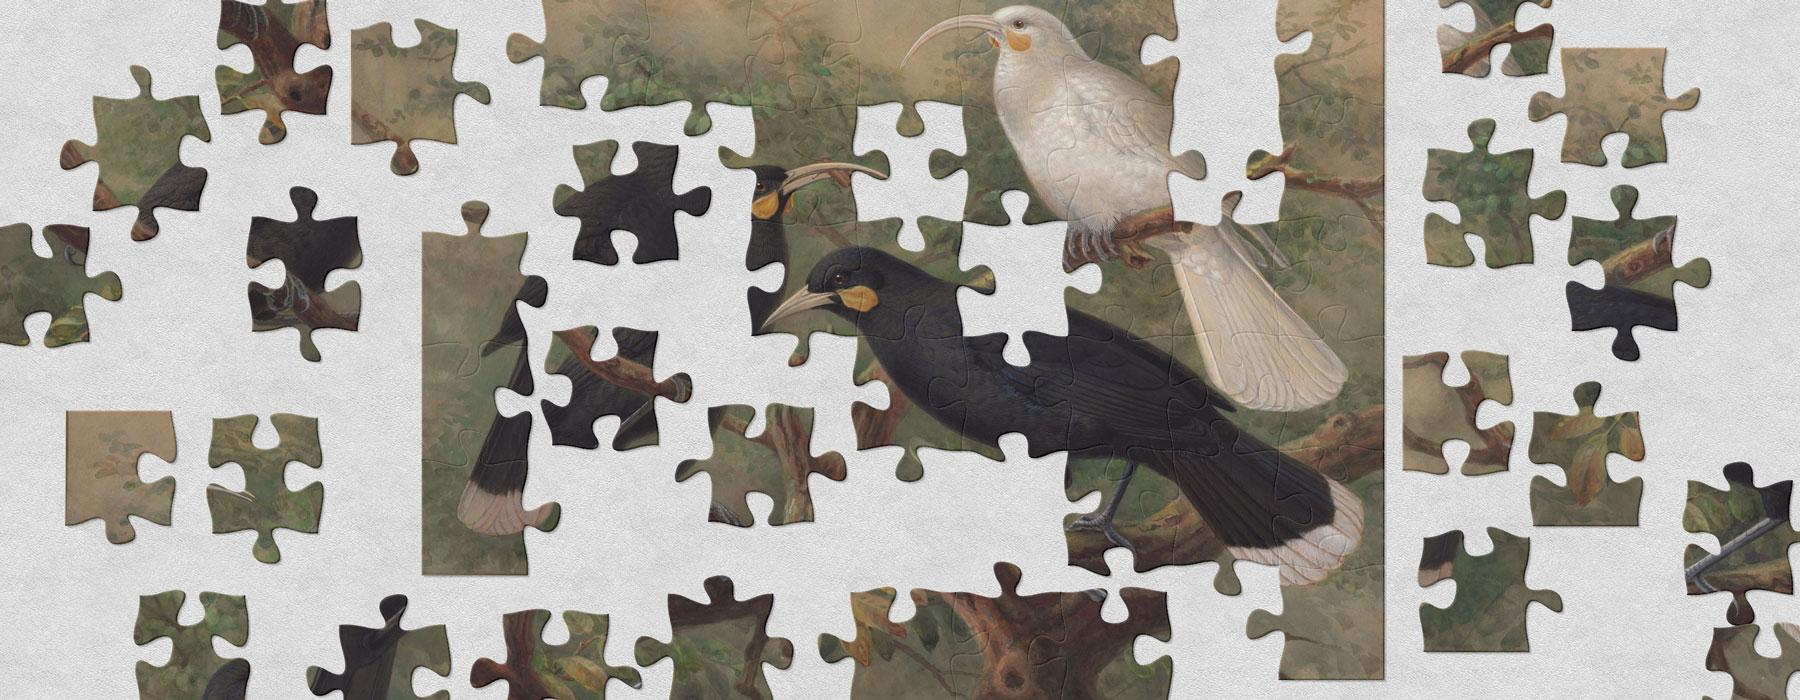 A jigsaw puzzle featuring a painting of three huia birds